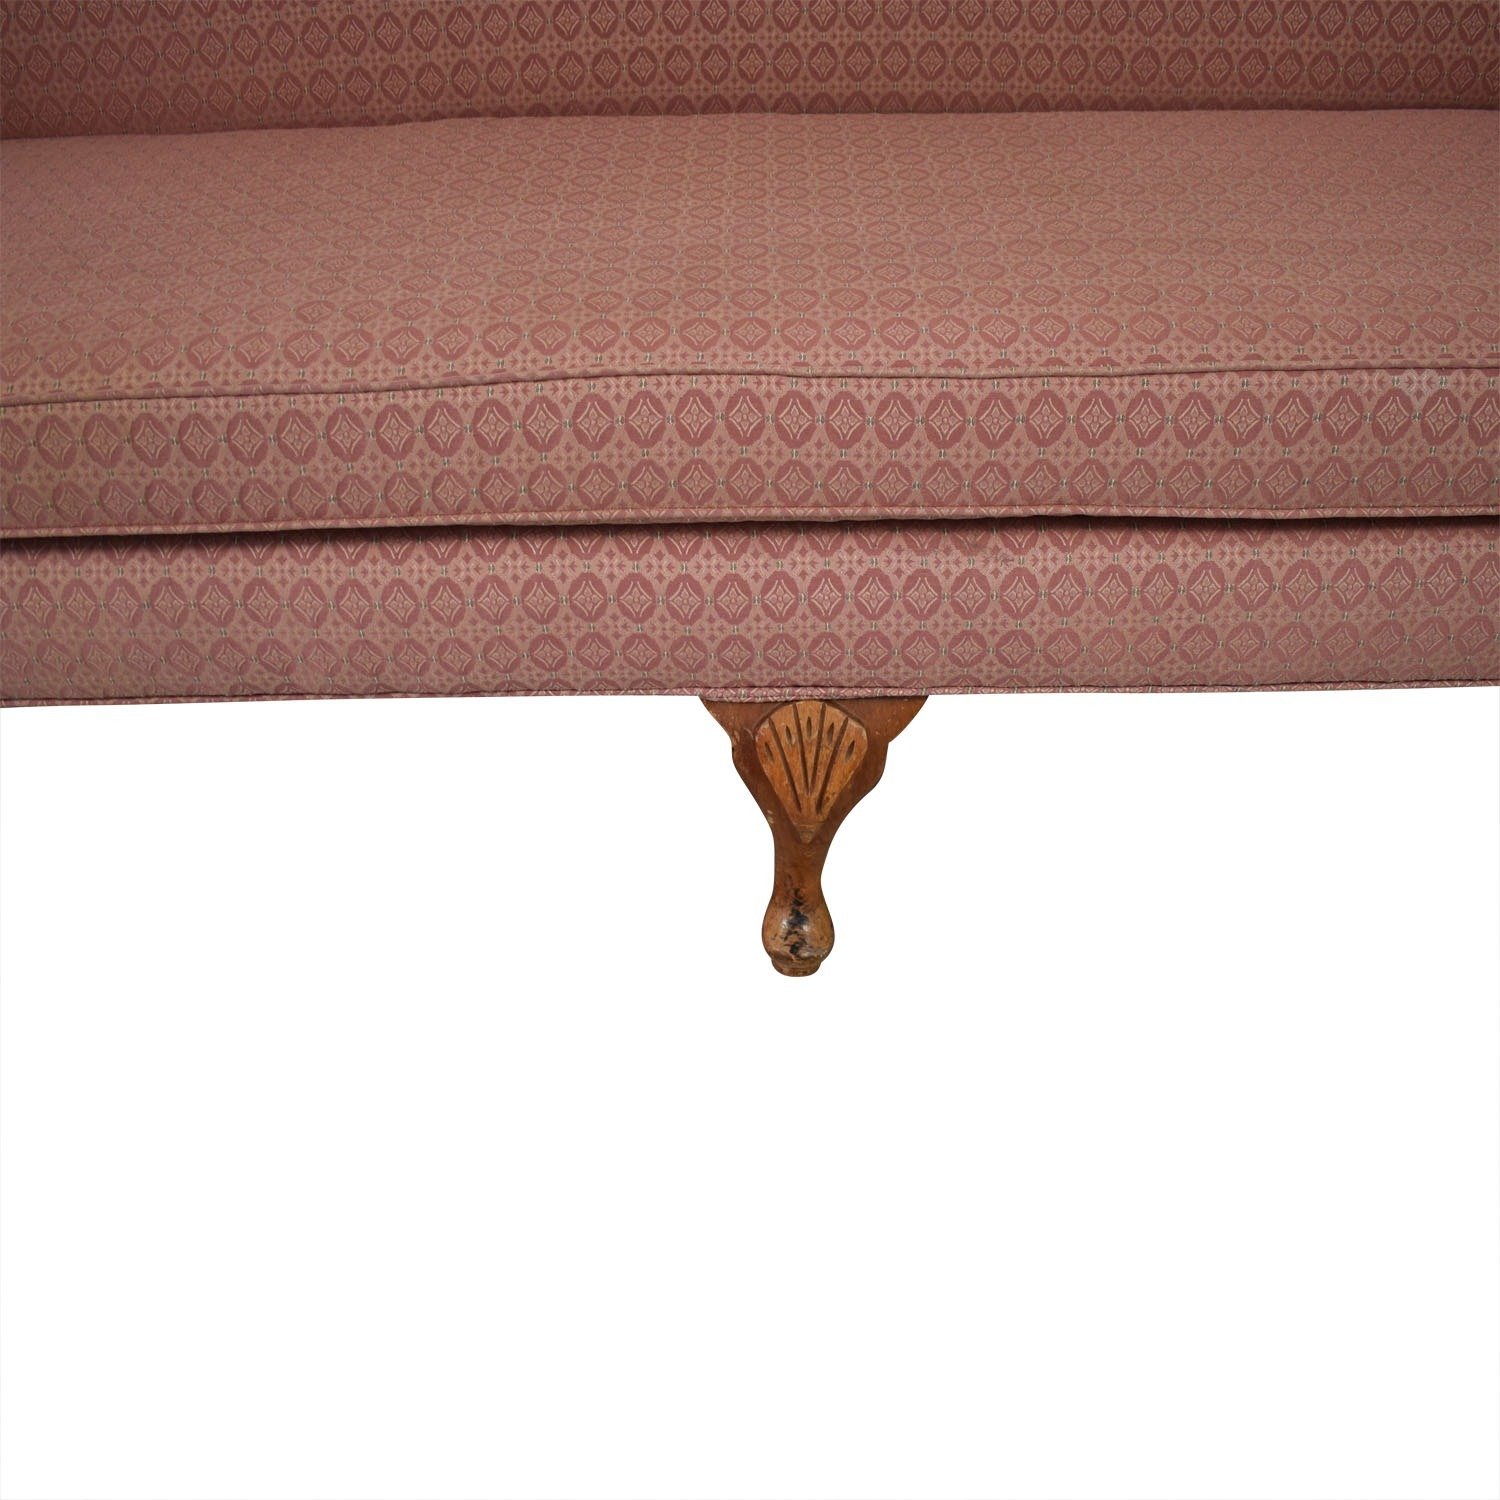 American Furniture  Camel Back Round Arm Sofa